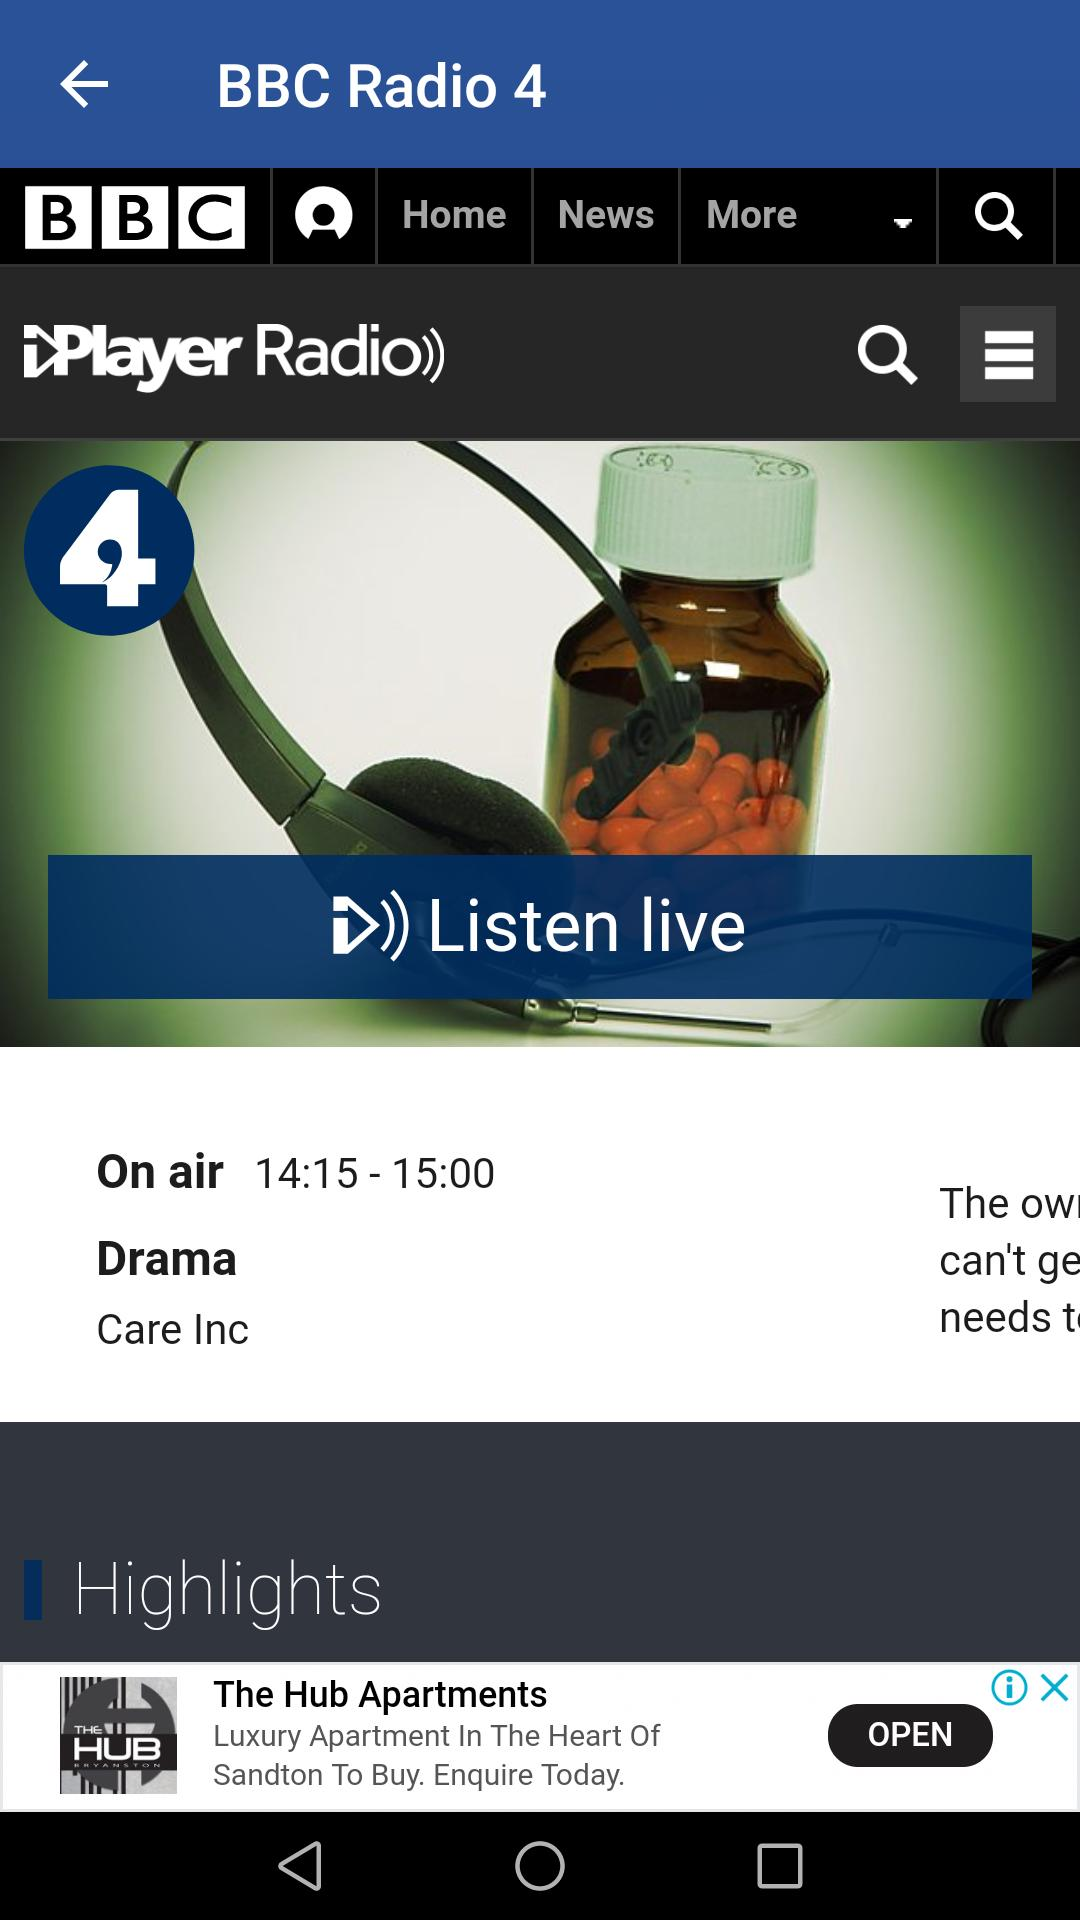 📻 BBC Radio 4 App - BBC iPlayer Radio for Android - APK